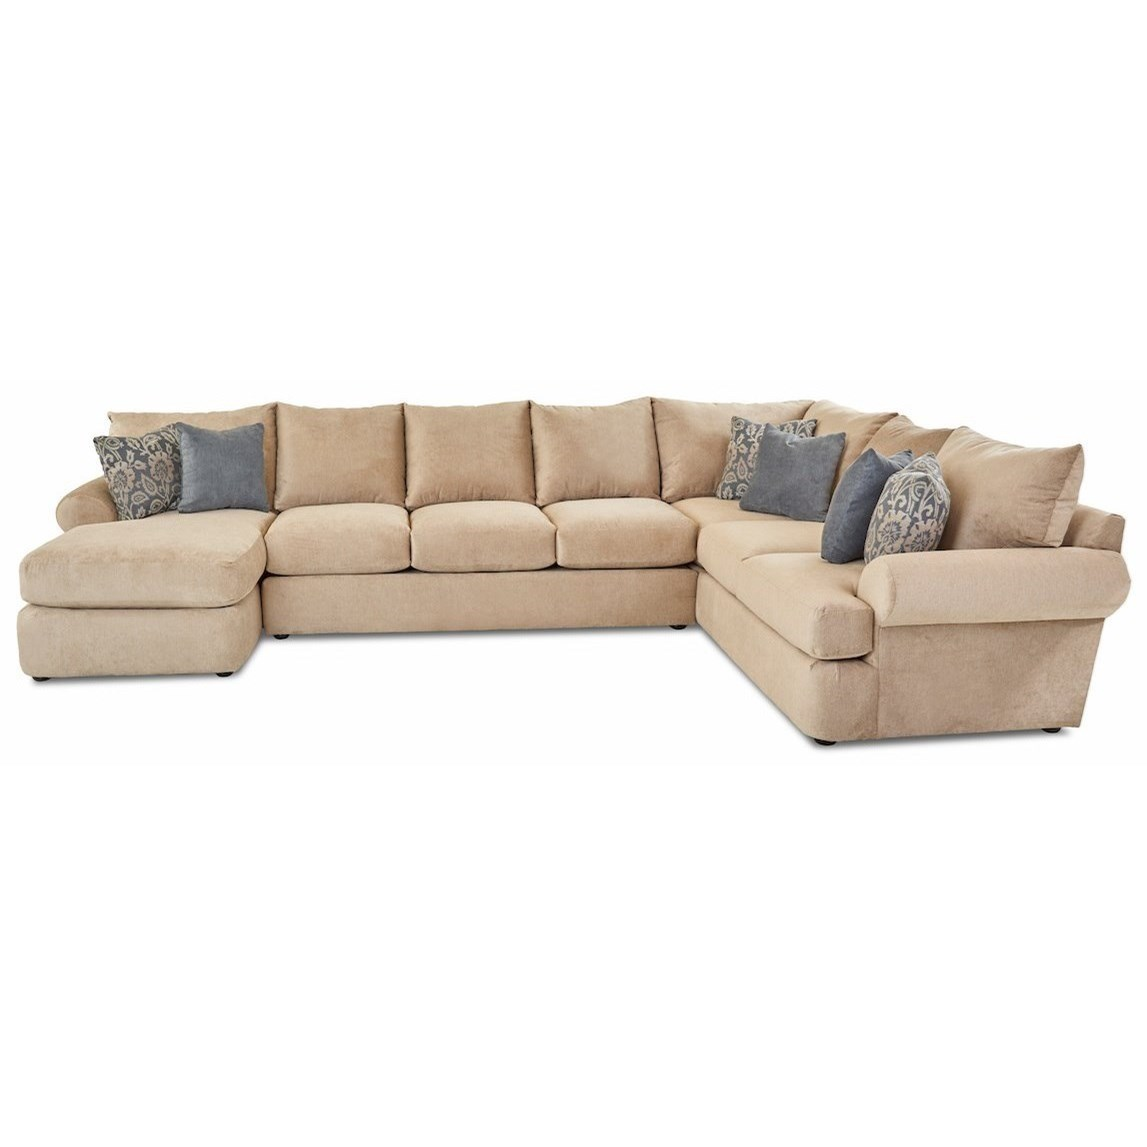 Cora 3-Piece Sectional Sofa w/ LAF Chaise by Klaussner at Northeast Factory Direct